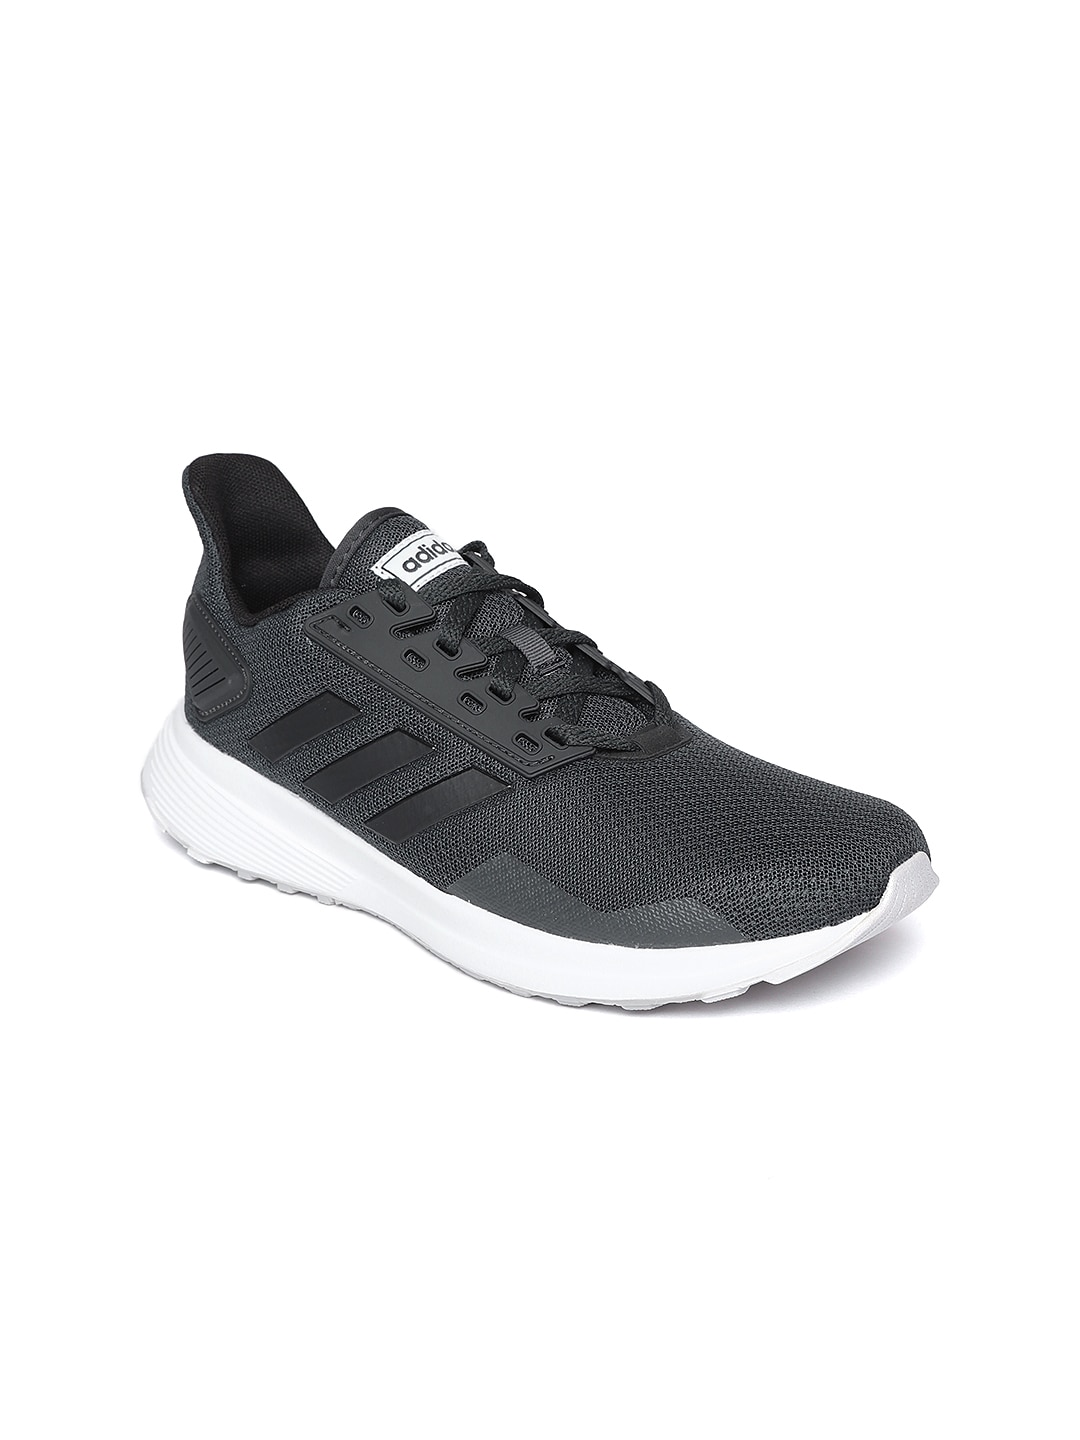 Women Running Shoes Trainers Pick 1 adidas Duramo Lite 2.0